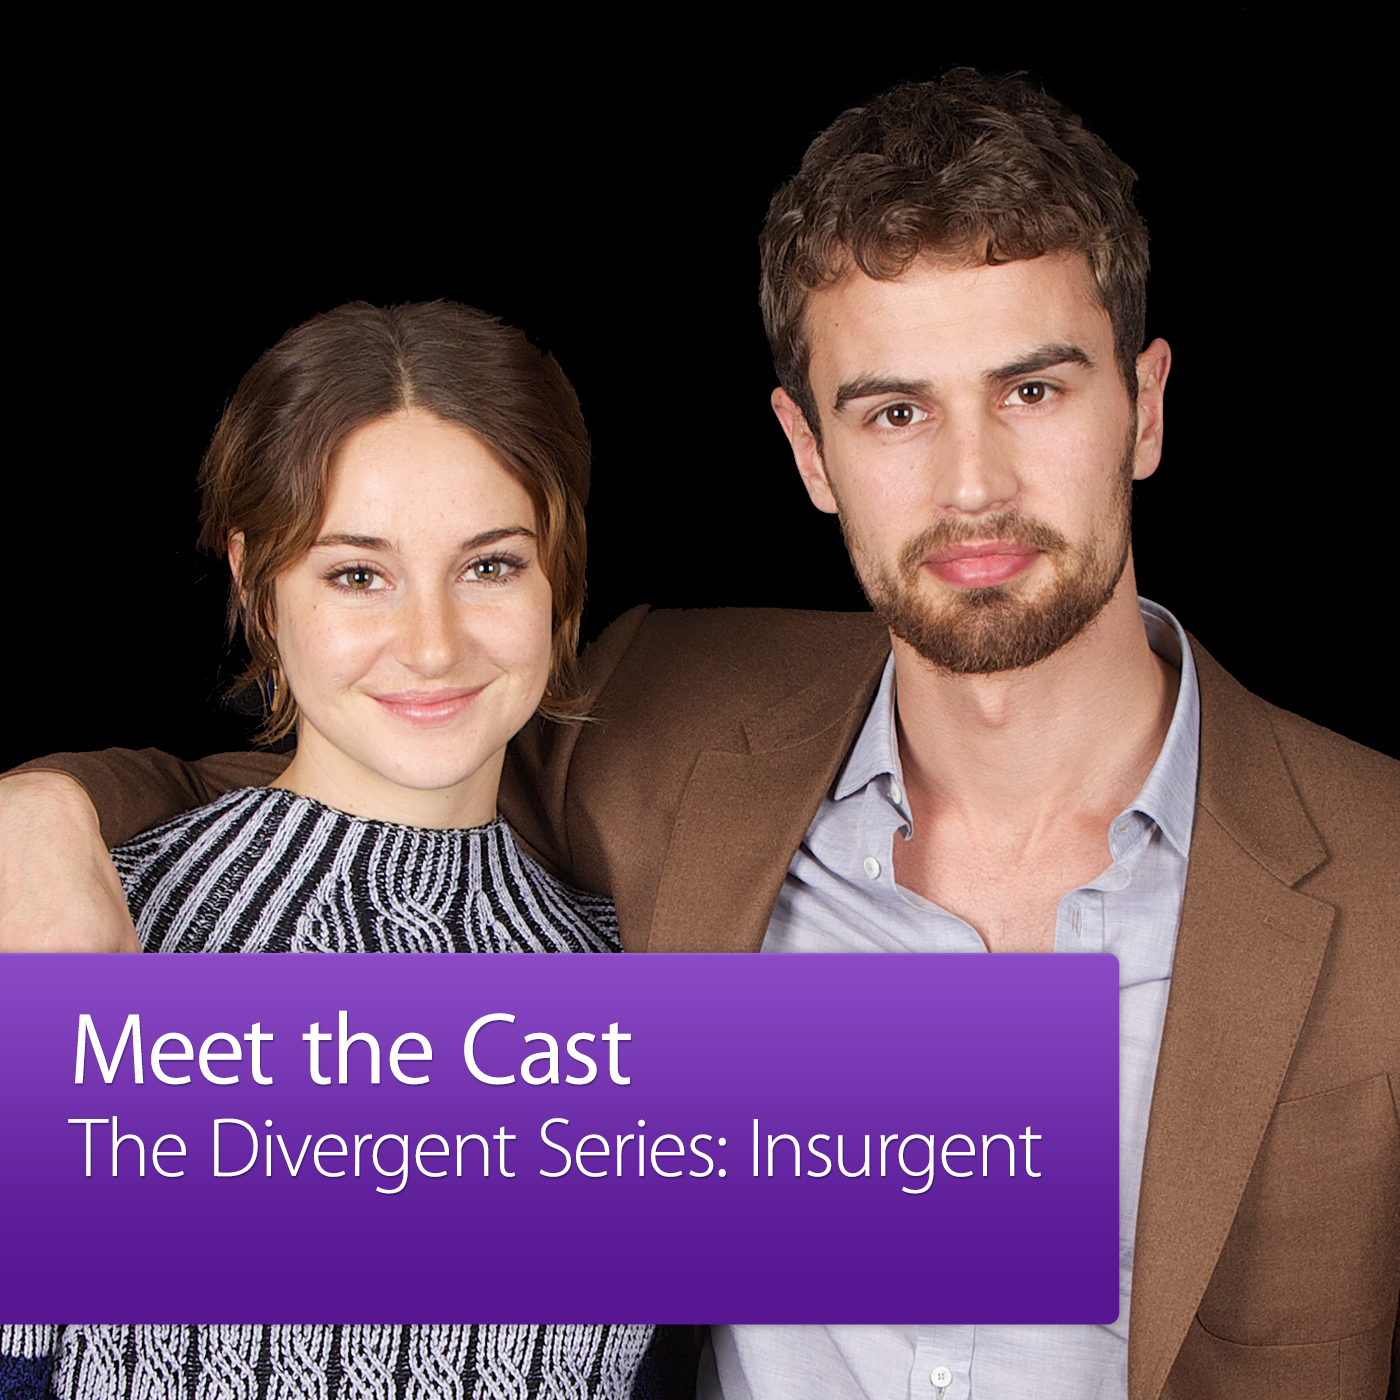 The Divergent Series: Insurgent: Meet the Cast